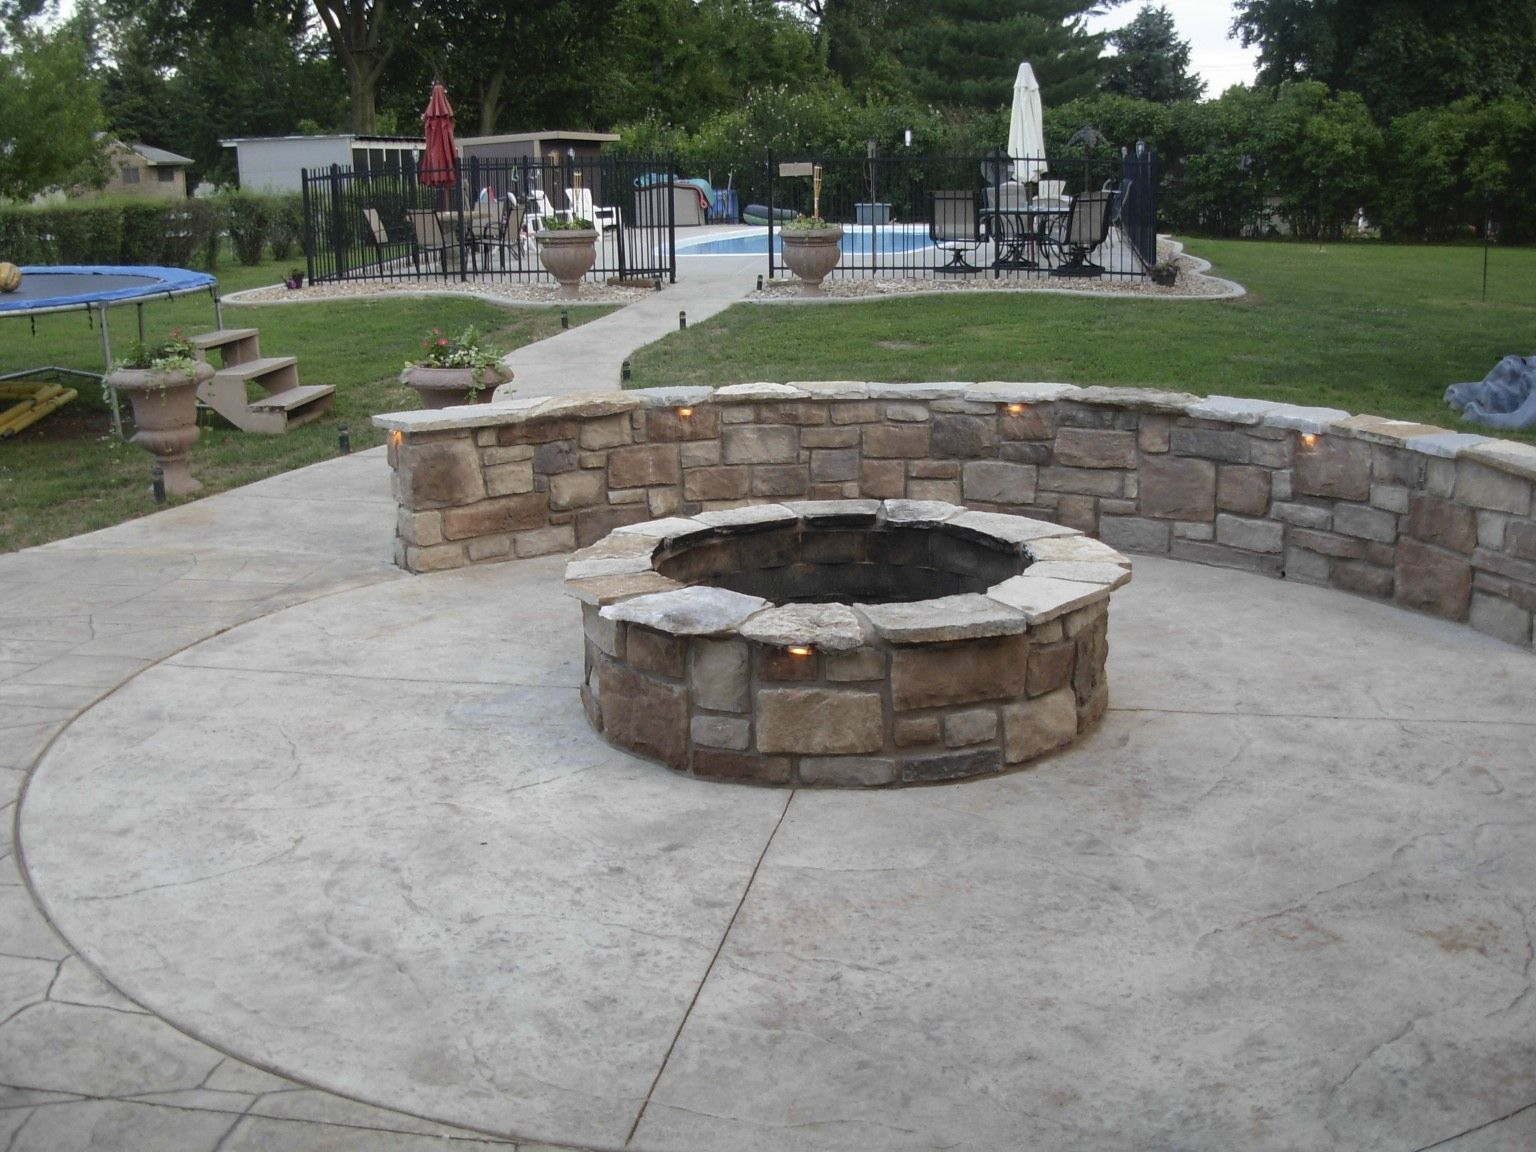 Pin By Connie Row On Ideas For The House Concrete Fire Pits Fire Pit On Concrete Slab Fire Pit Backyard